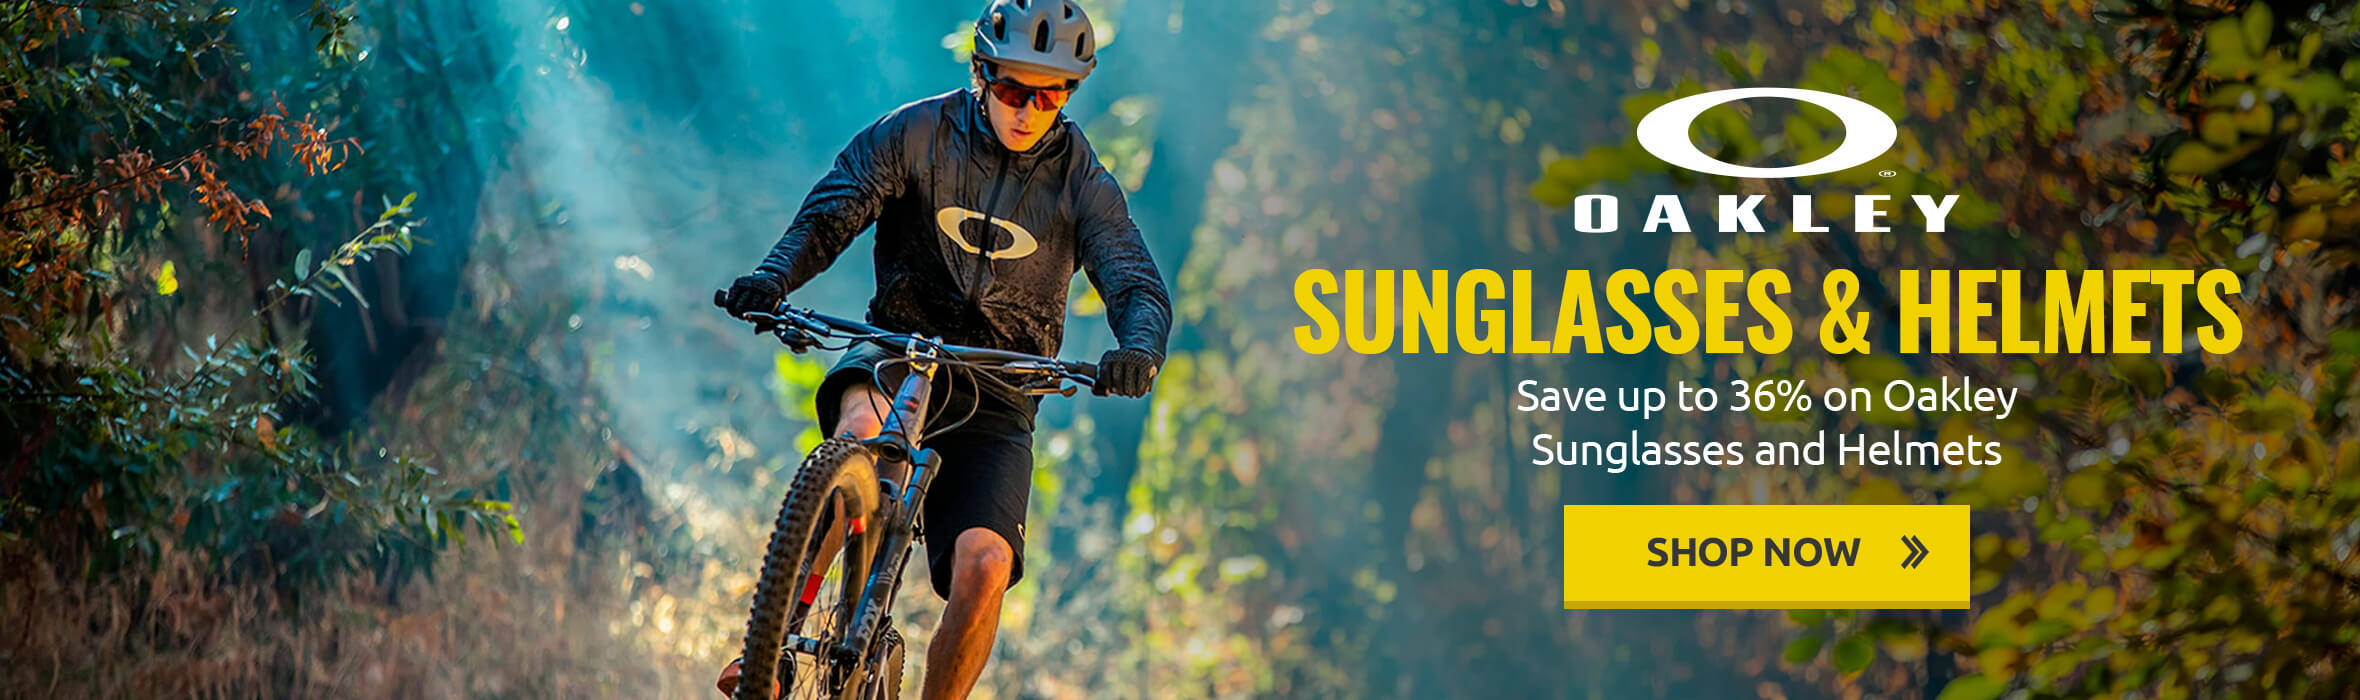 Shop Oakley Sunglasses & Helmets